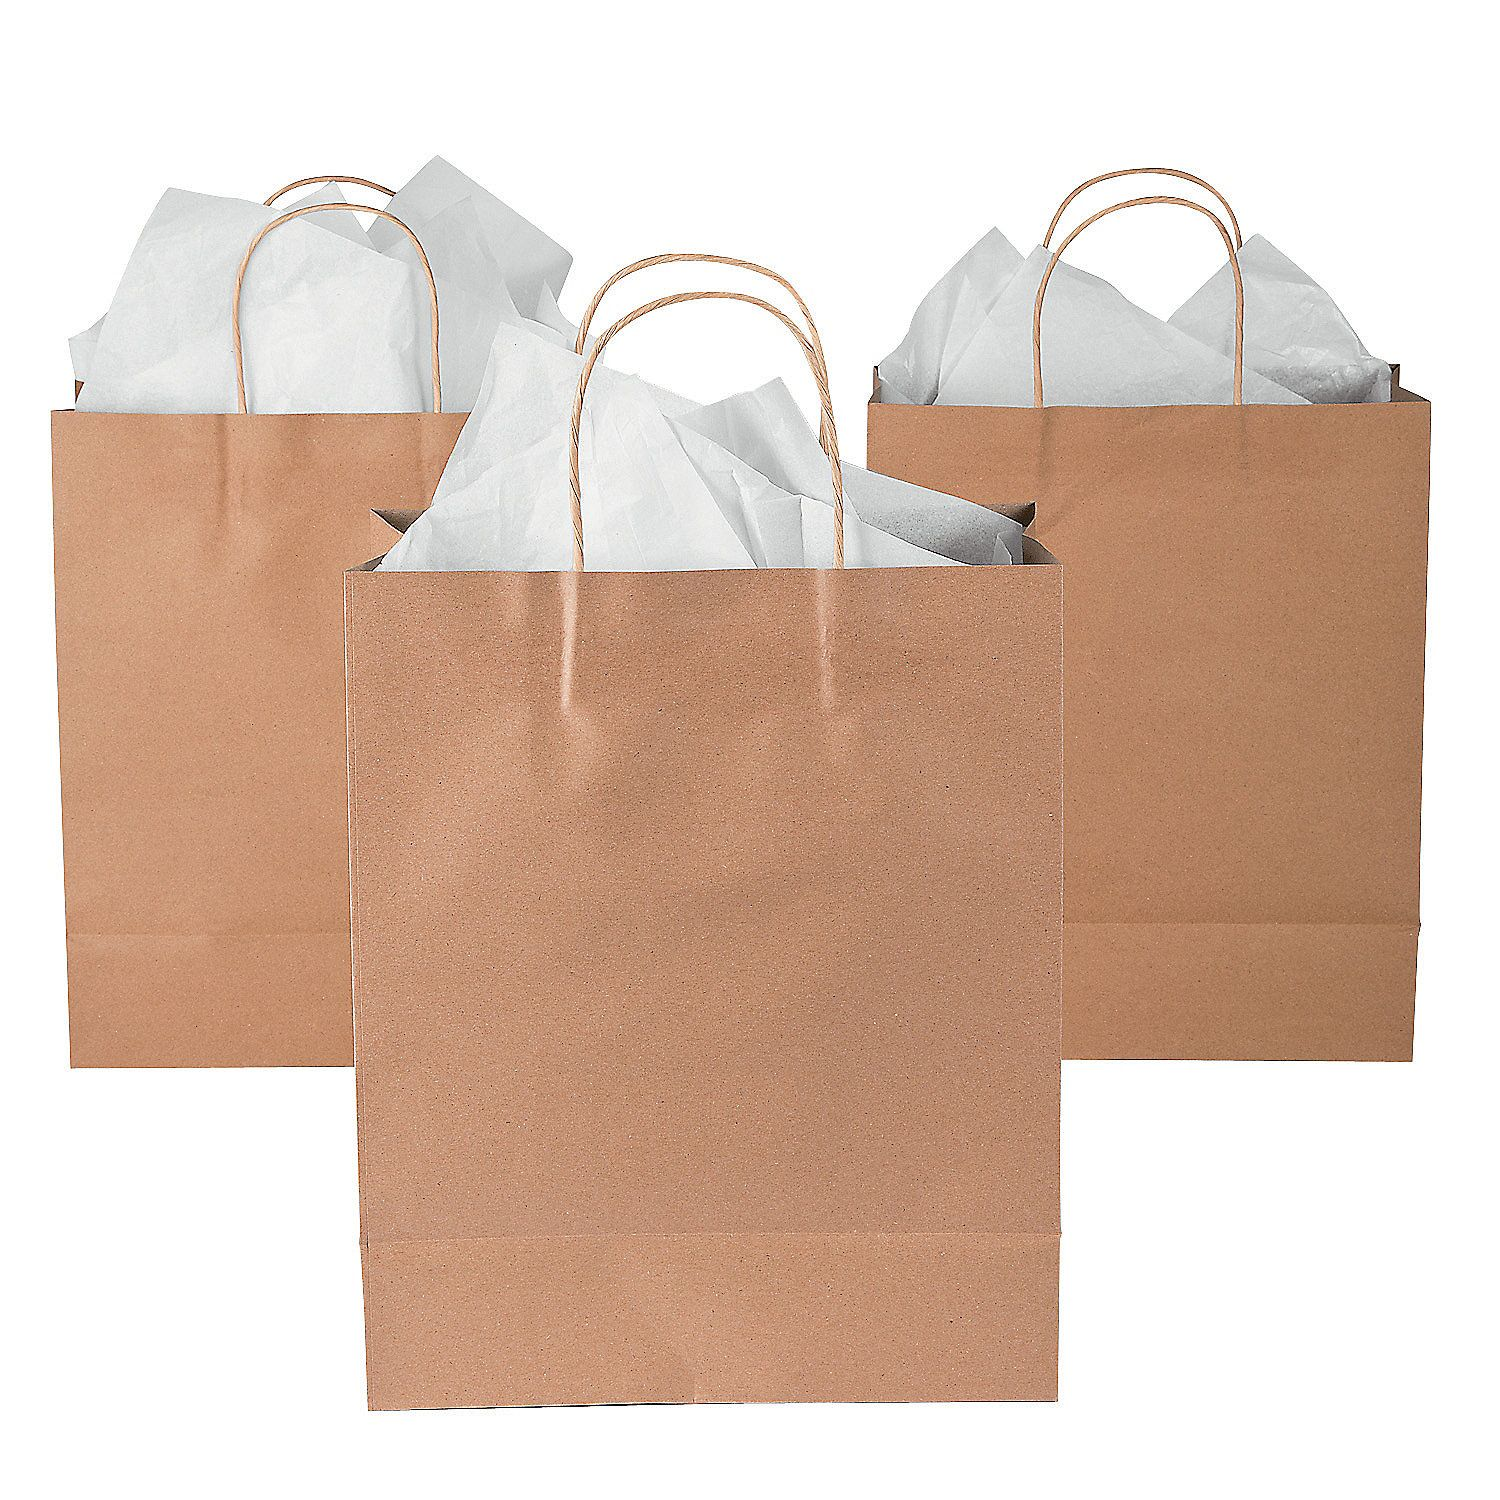 tissue paper in large gift bag